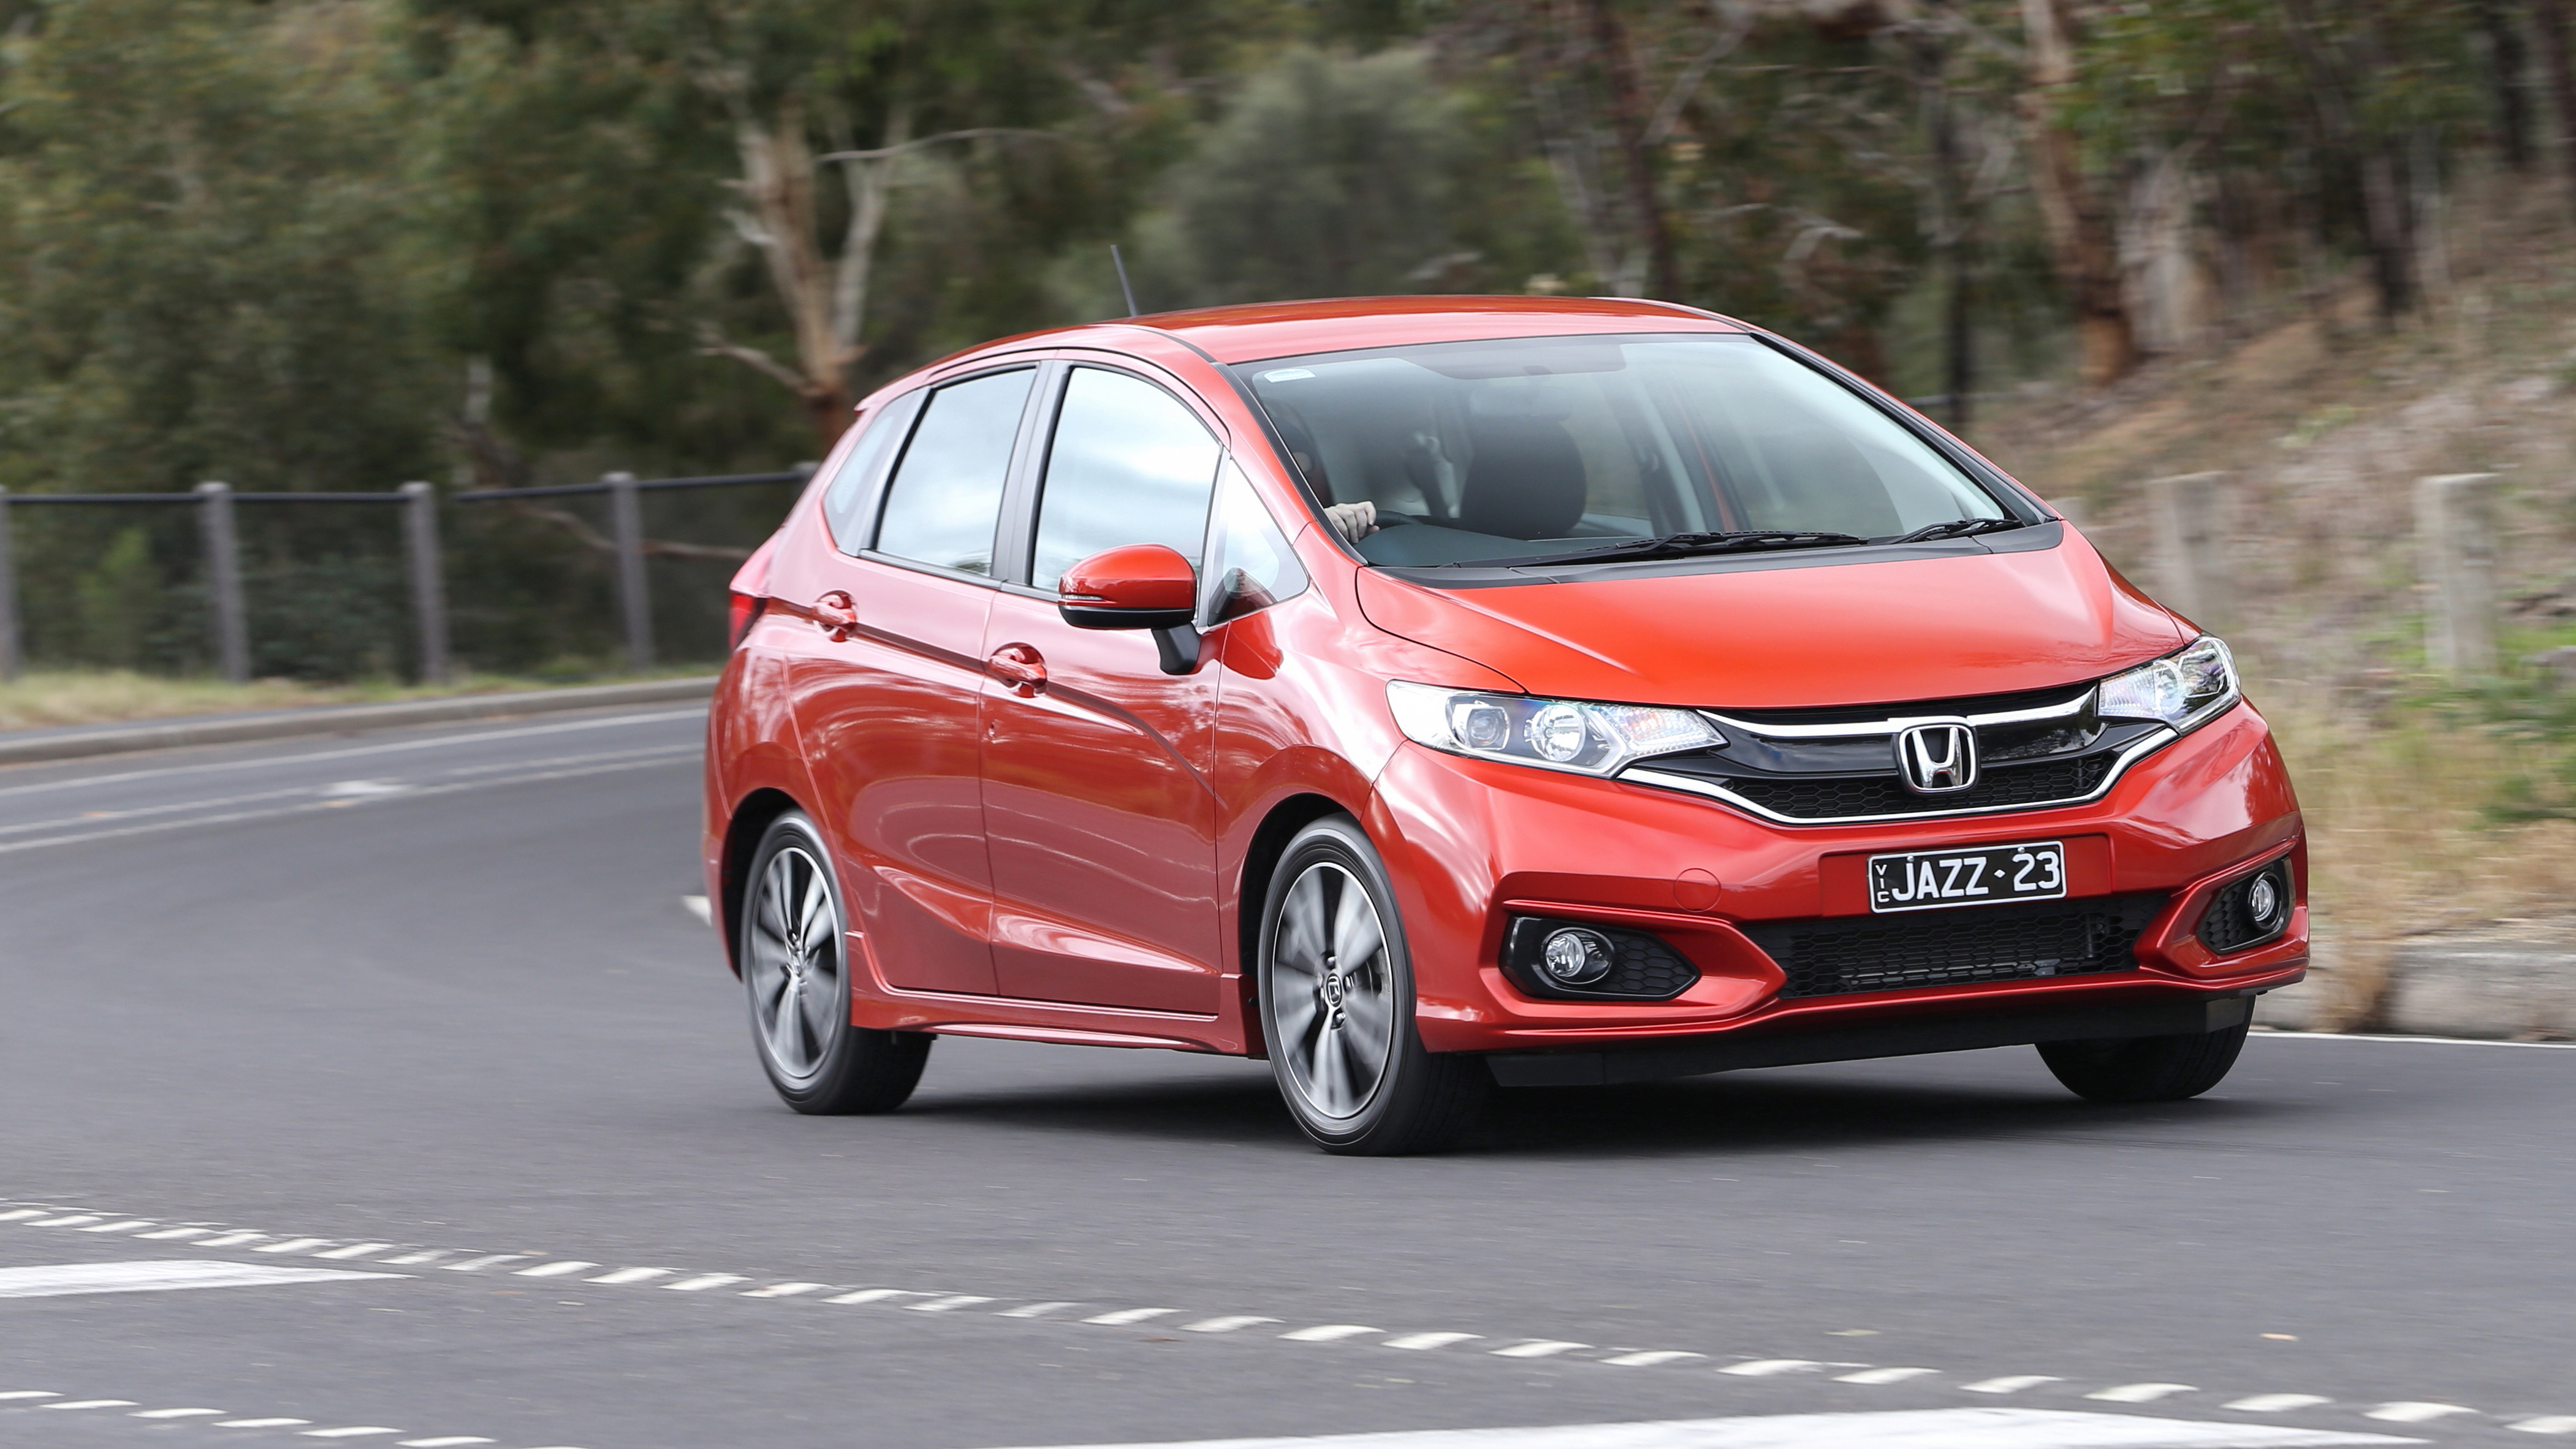 2019 Honda Jazz VTi-S review